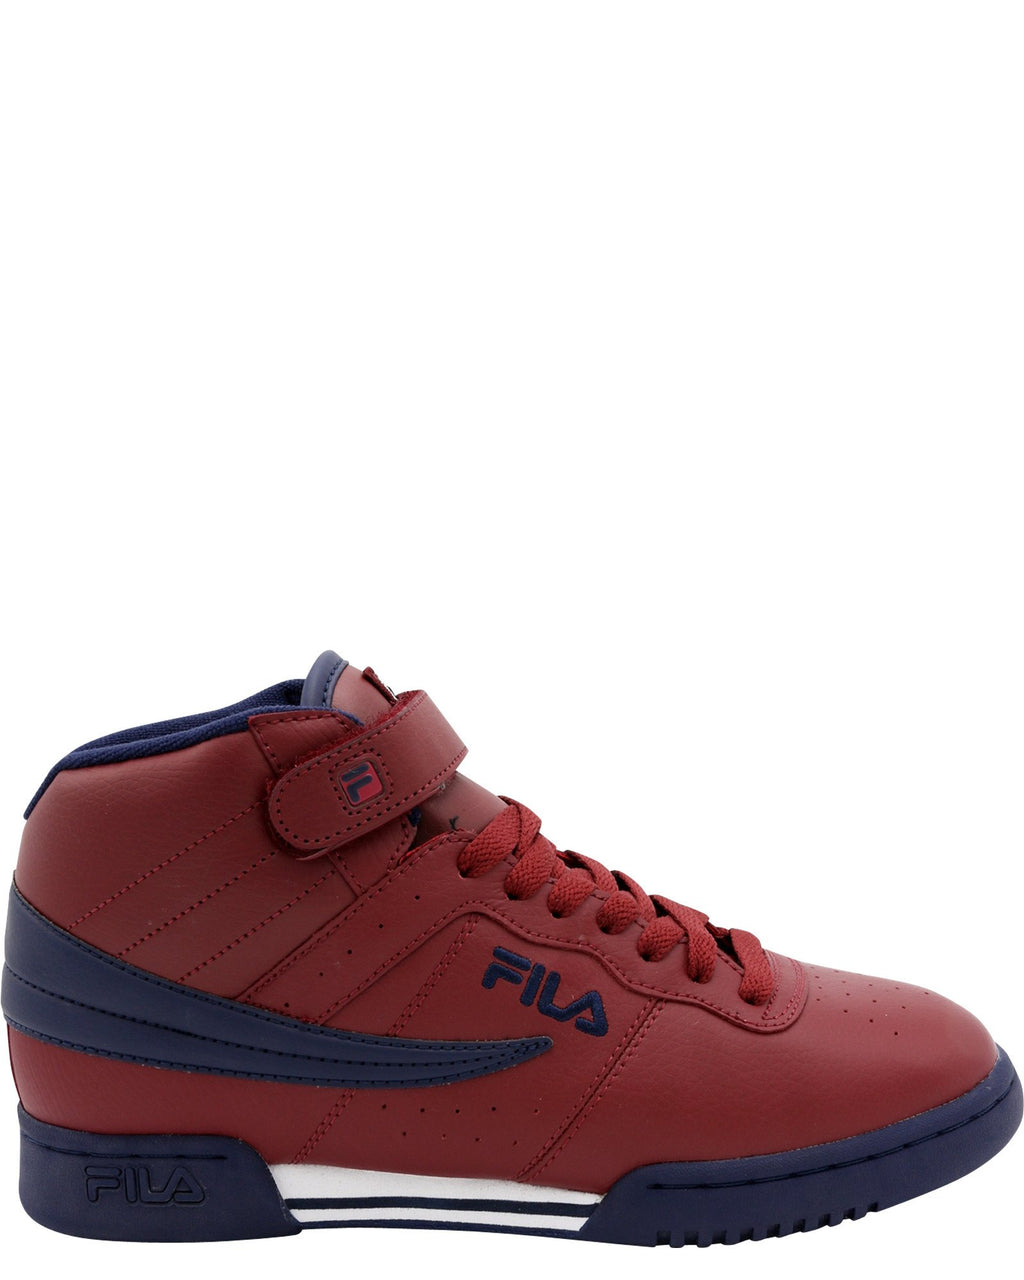 Fila - Men's 13 Mid Sneakers - V.I.M. - 1